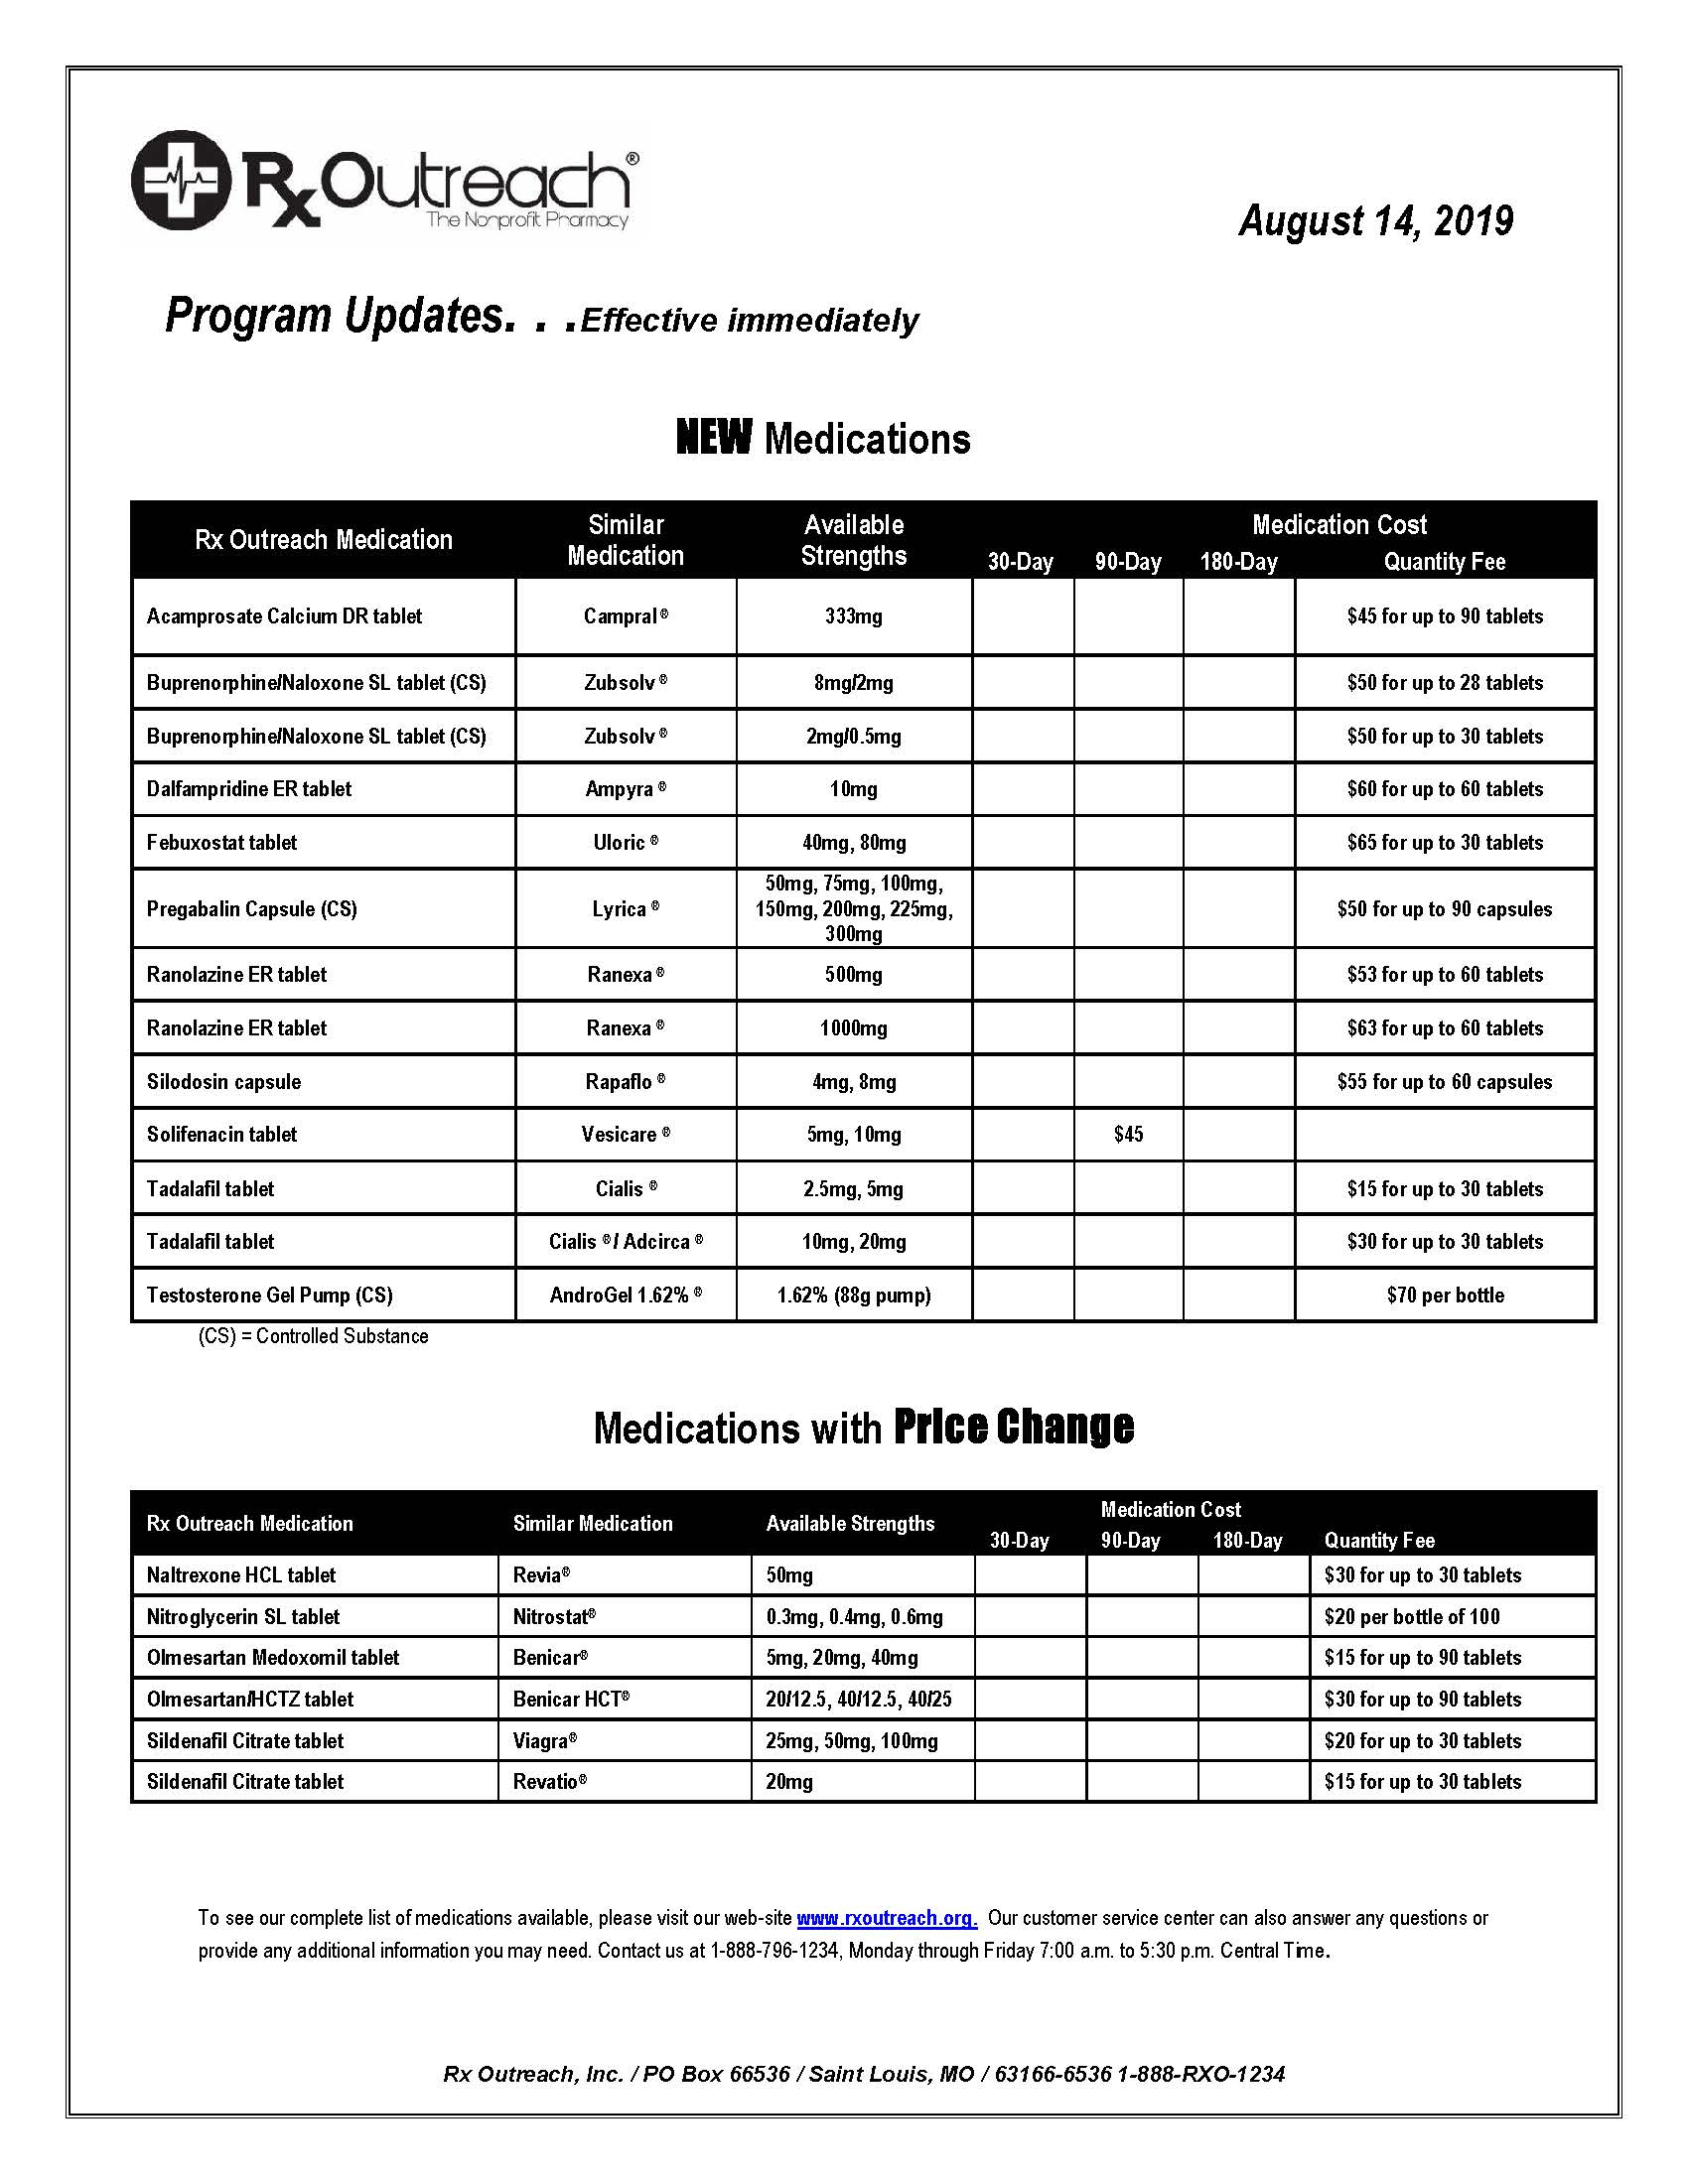 Drug Program Update Aug 19.